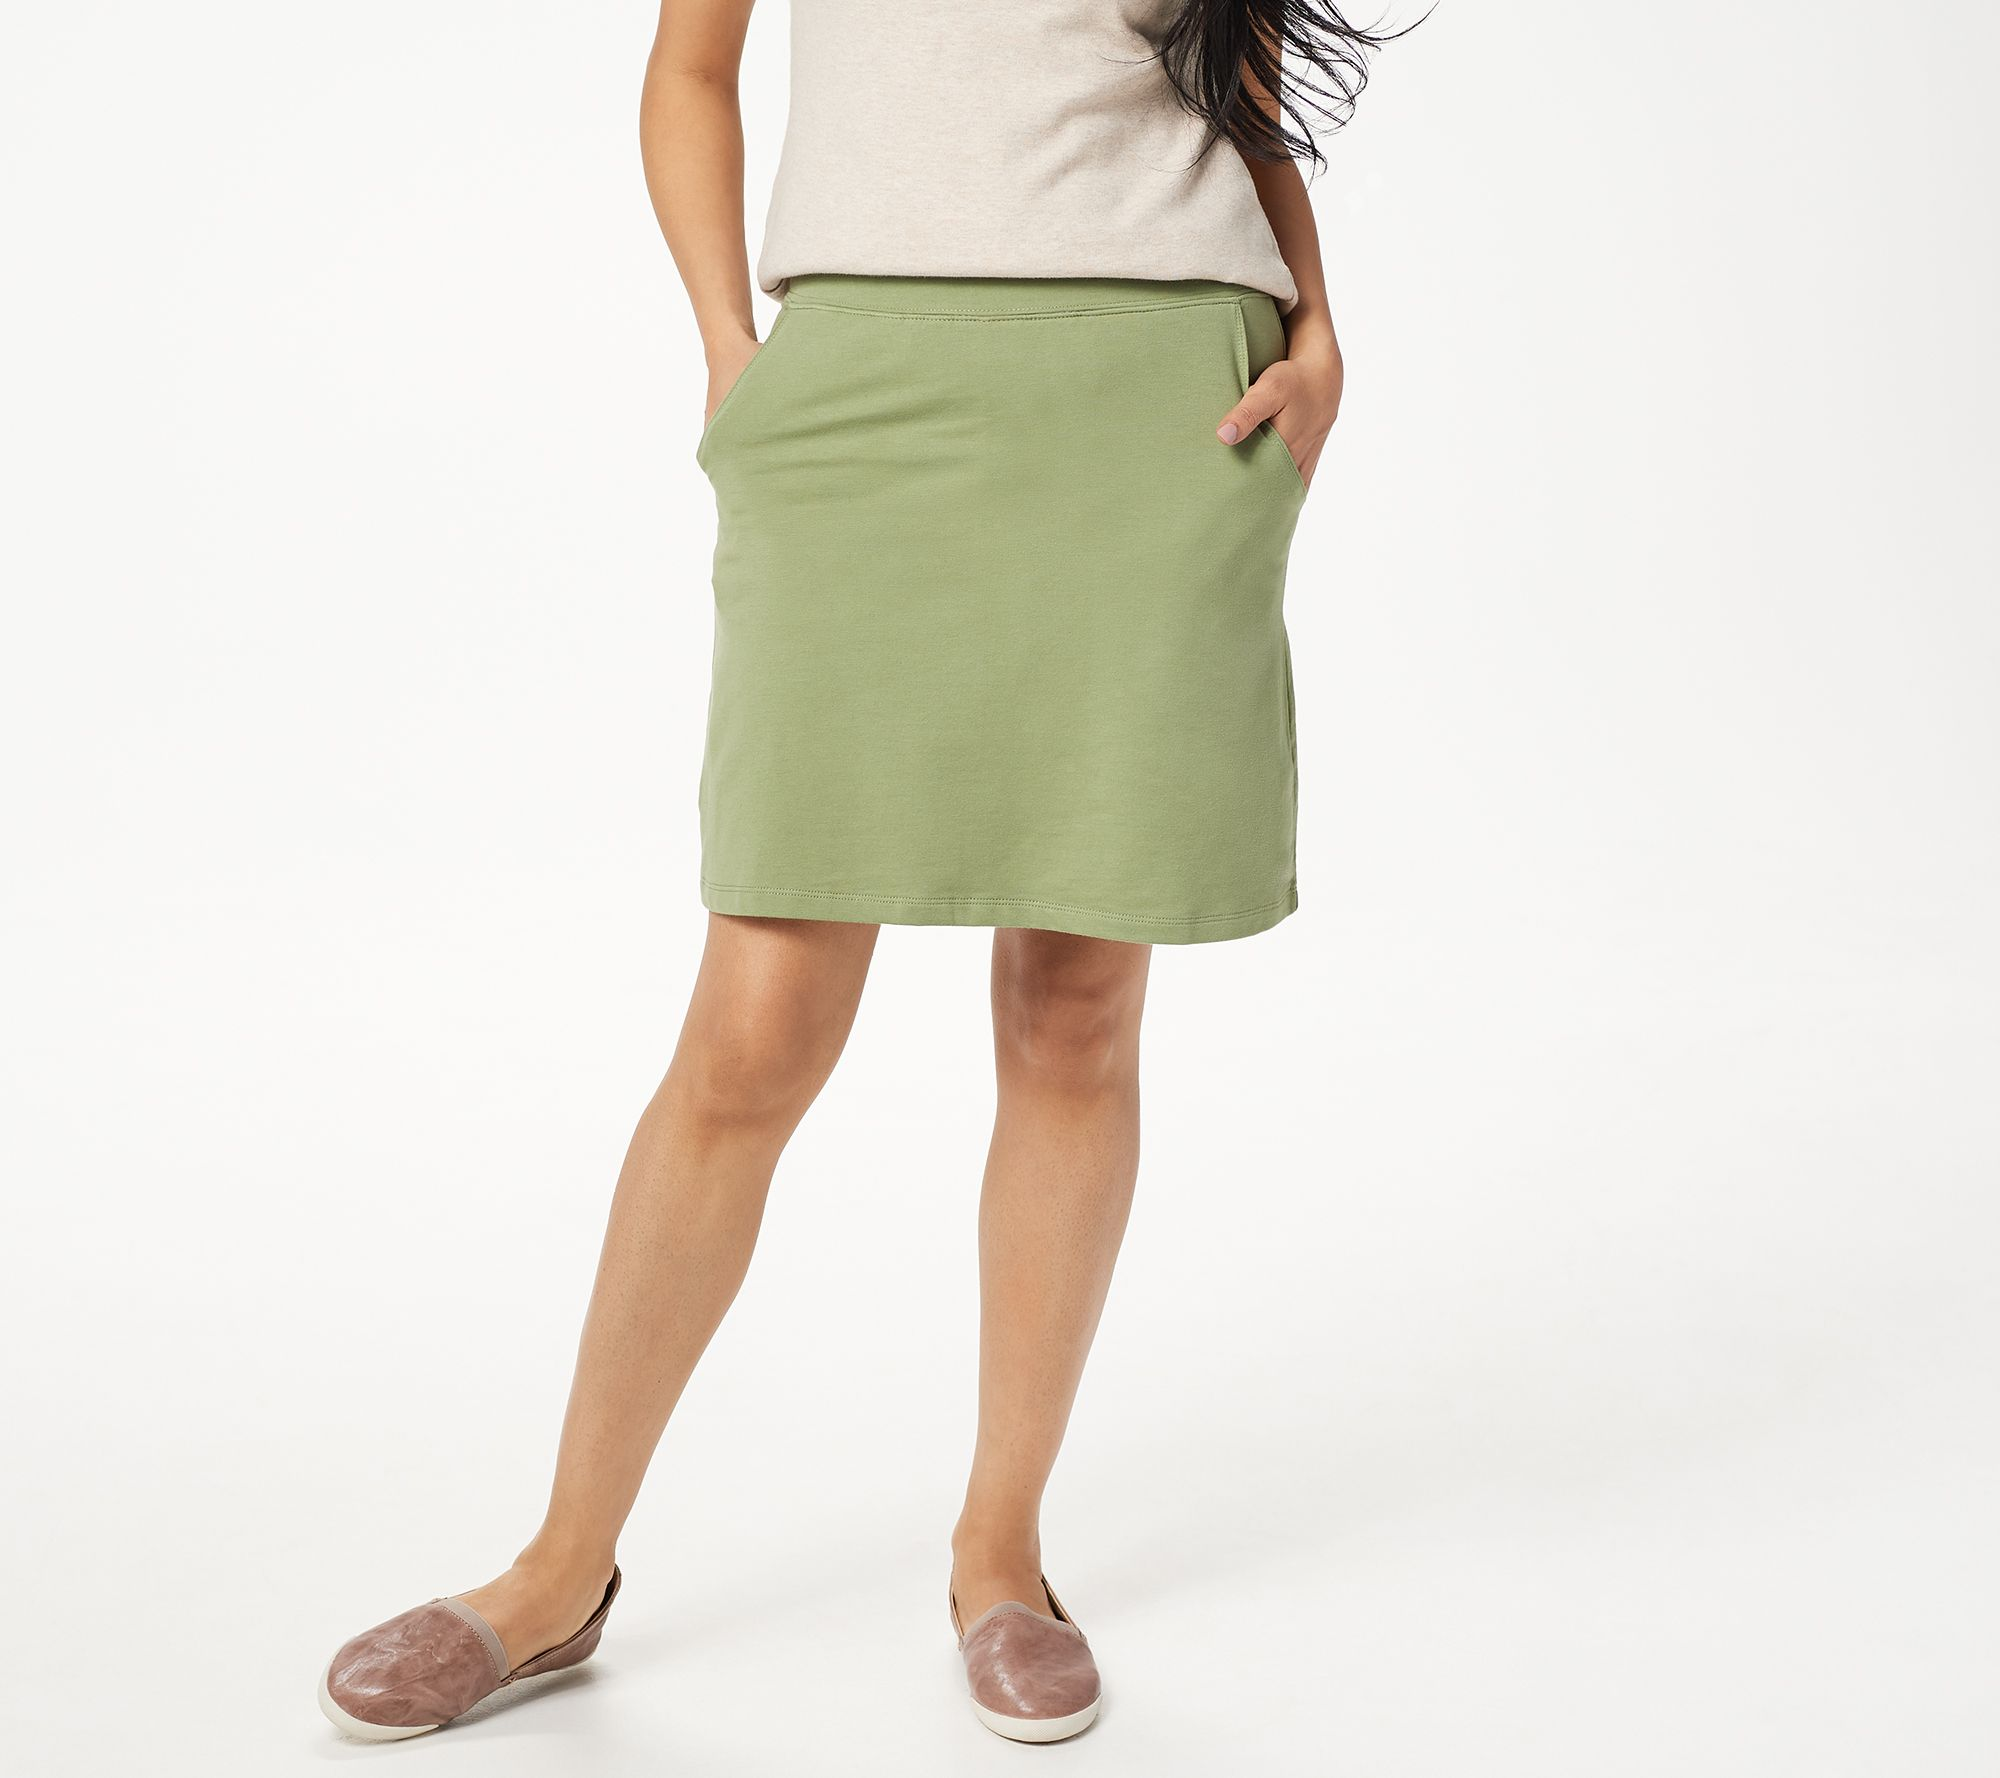 bdf855fb34 Denim & Co. Essentials Pull-On Knit Skort with Pockets - Page 1 — QVC.com